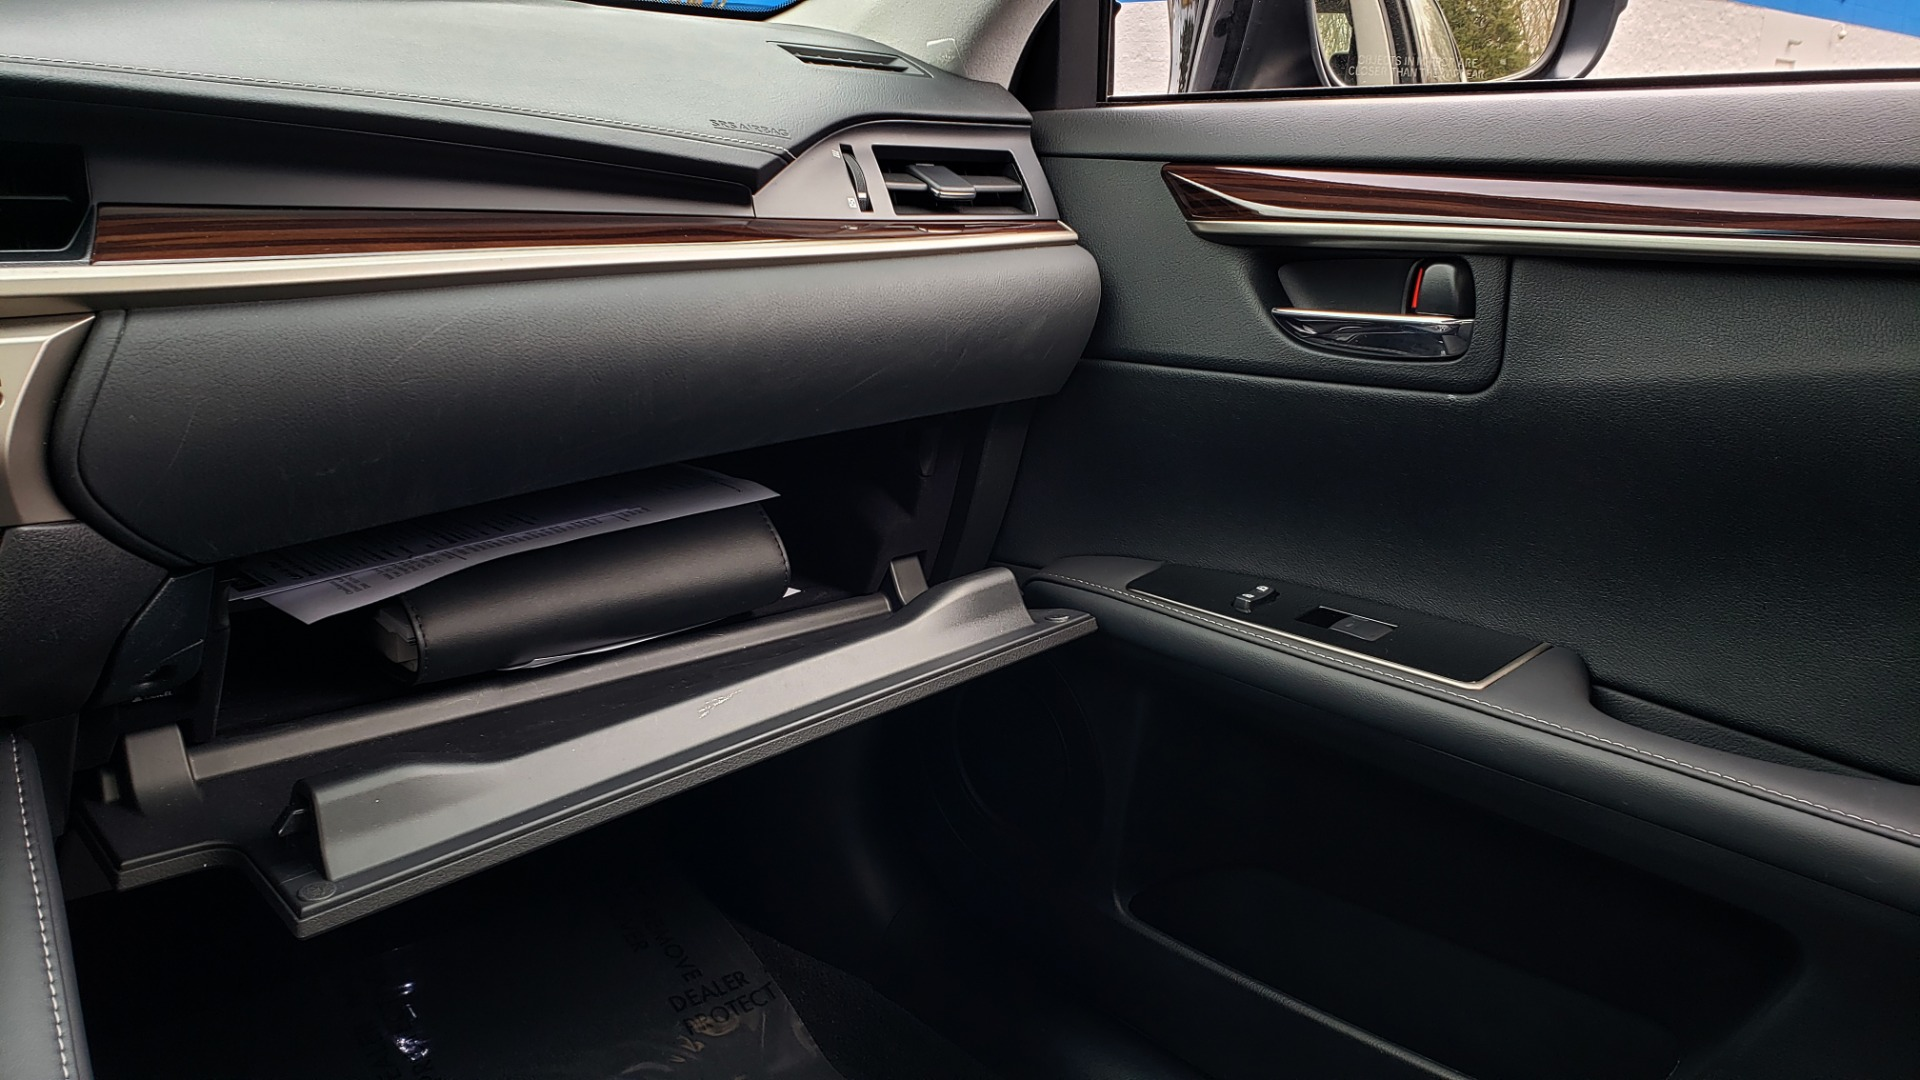 Used 2017 Lexus ES 350 PREMIUM / SUNROOF / PARK ASST / BSM / VENT SEATS / REARVIEW for sale Sold at Formula Imports in Charlotte NC 28227 50